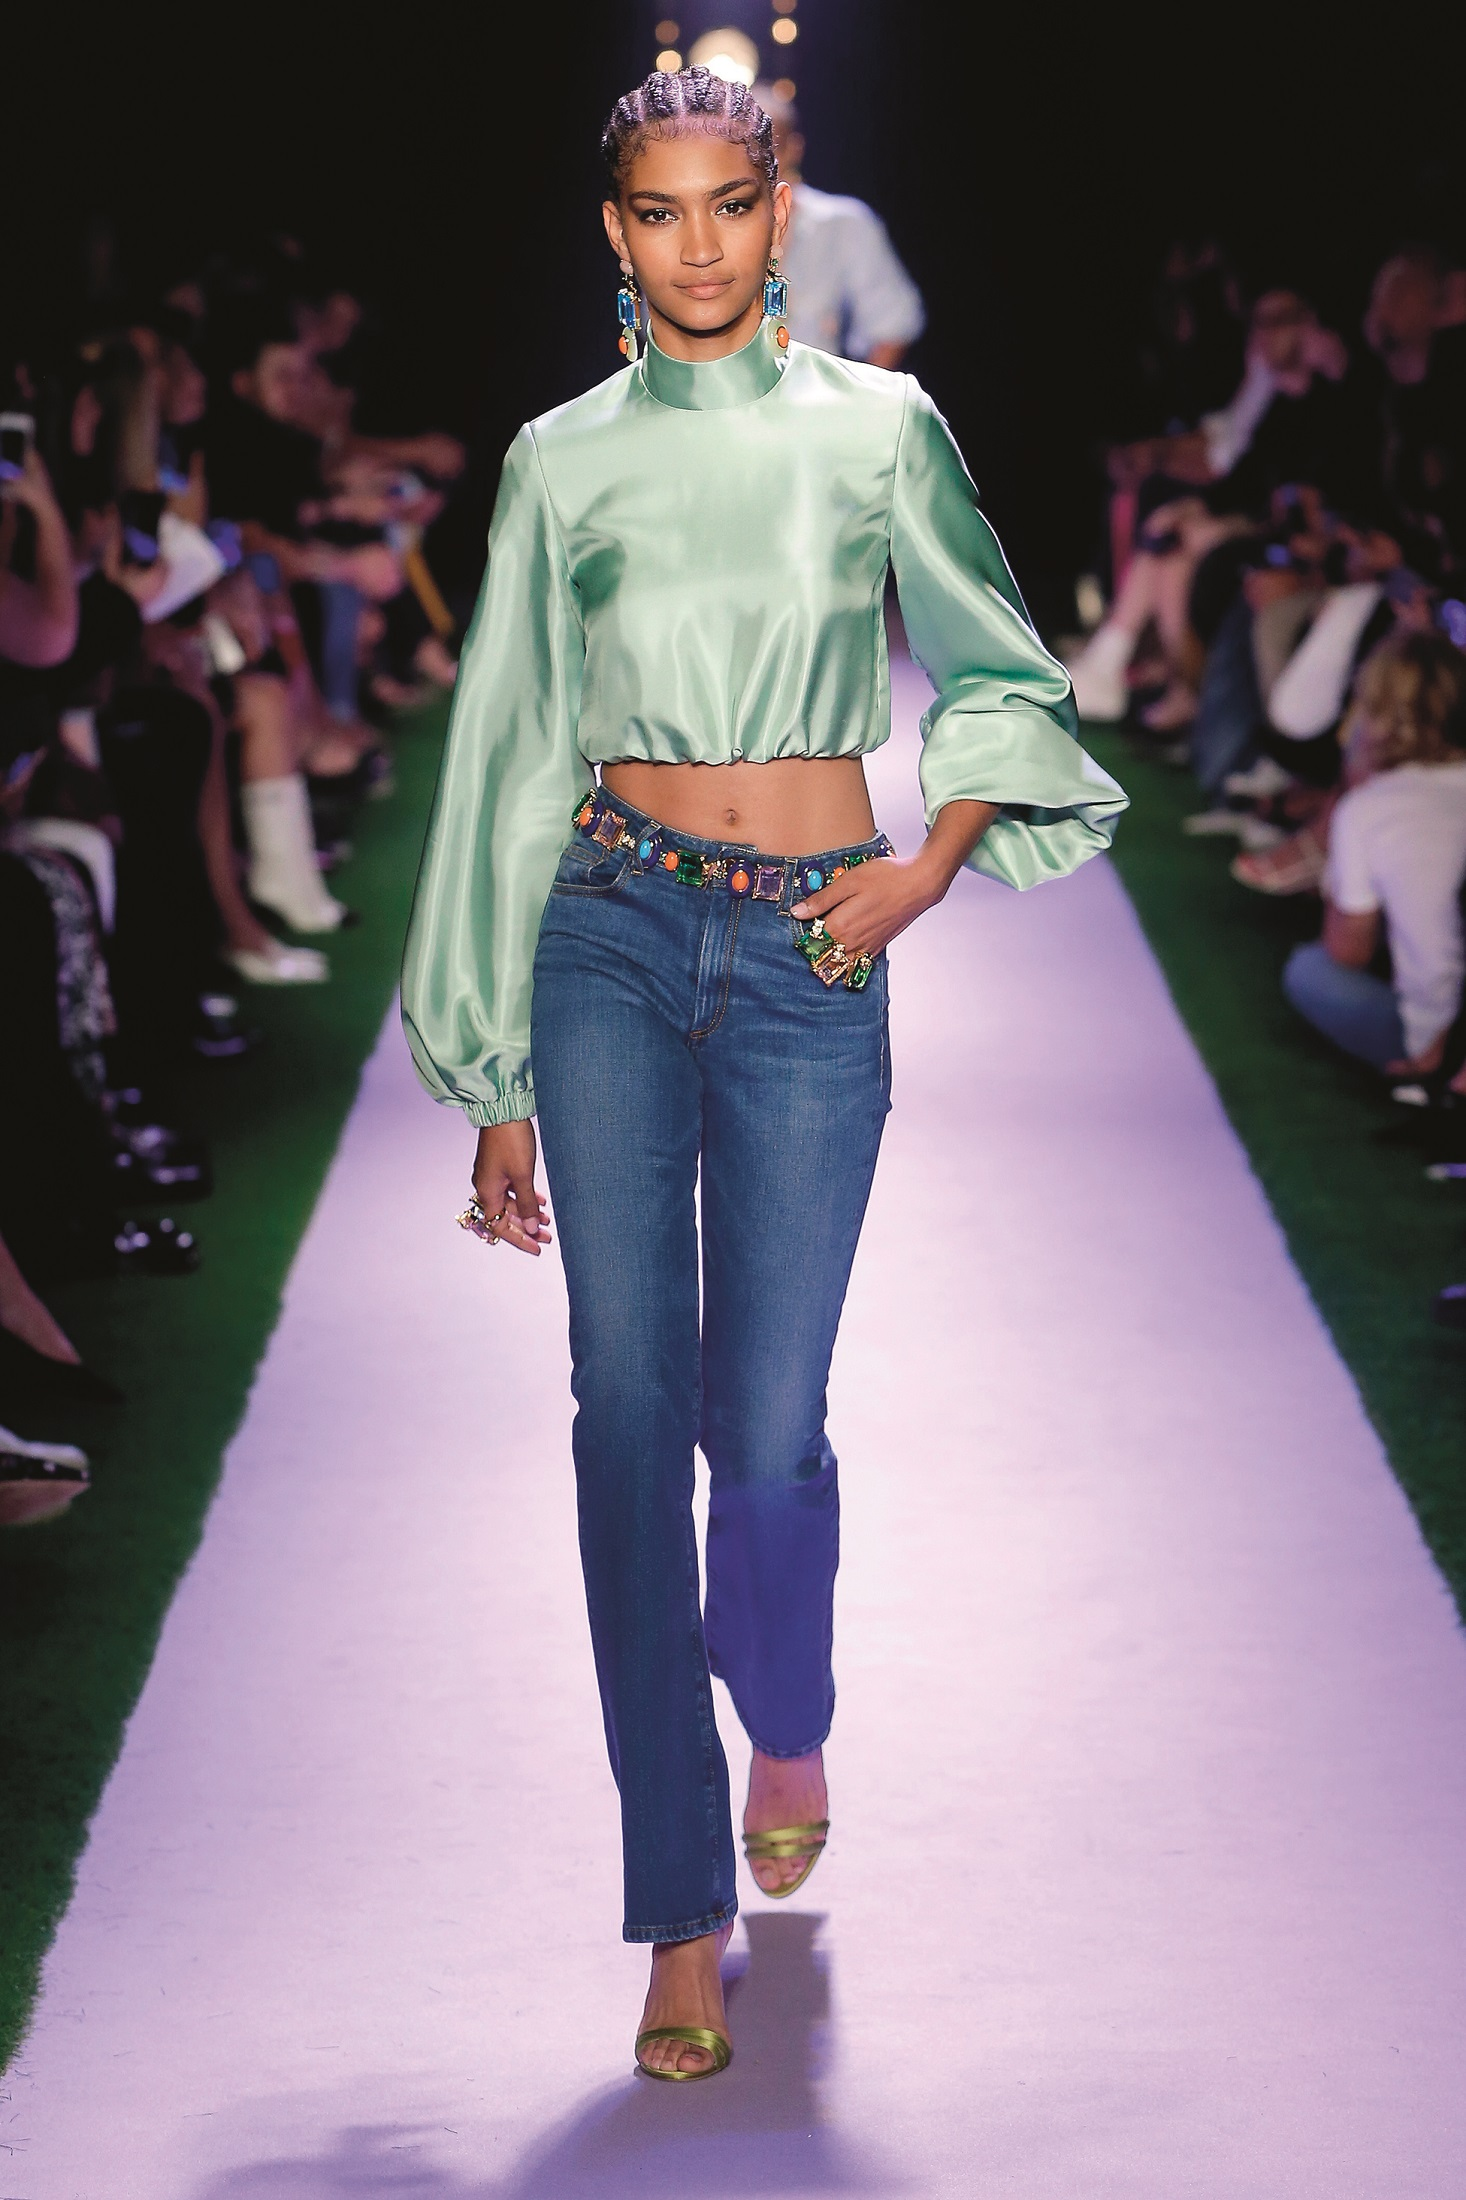 Model Anyelina Rosa walking on the runway Brandon Maxwell Fashion Show during New York Fashion Week Womenswear Spring / Summer 2020 held in New York, NY on September 8, 2019.,Image: 469974455, License: Rights-managed, Restrictions: *** World Rights ***, Model Release: no, Credit line: Jonas Gustavsson / ddp USA / Profimedia